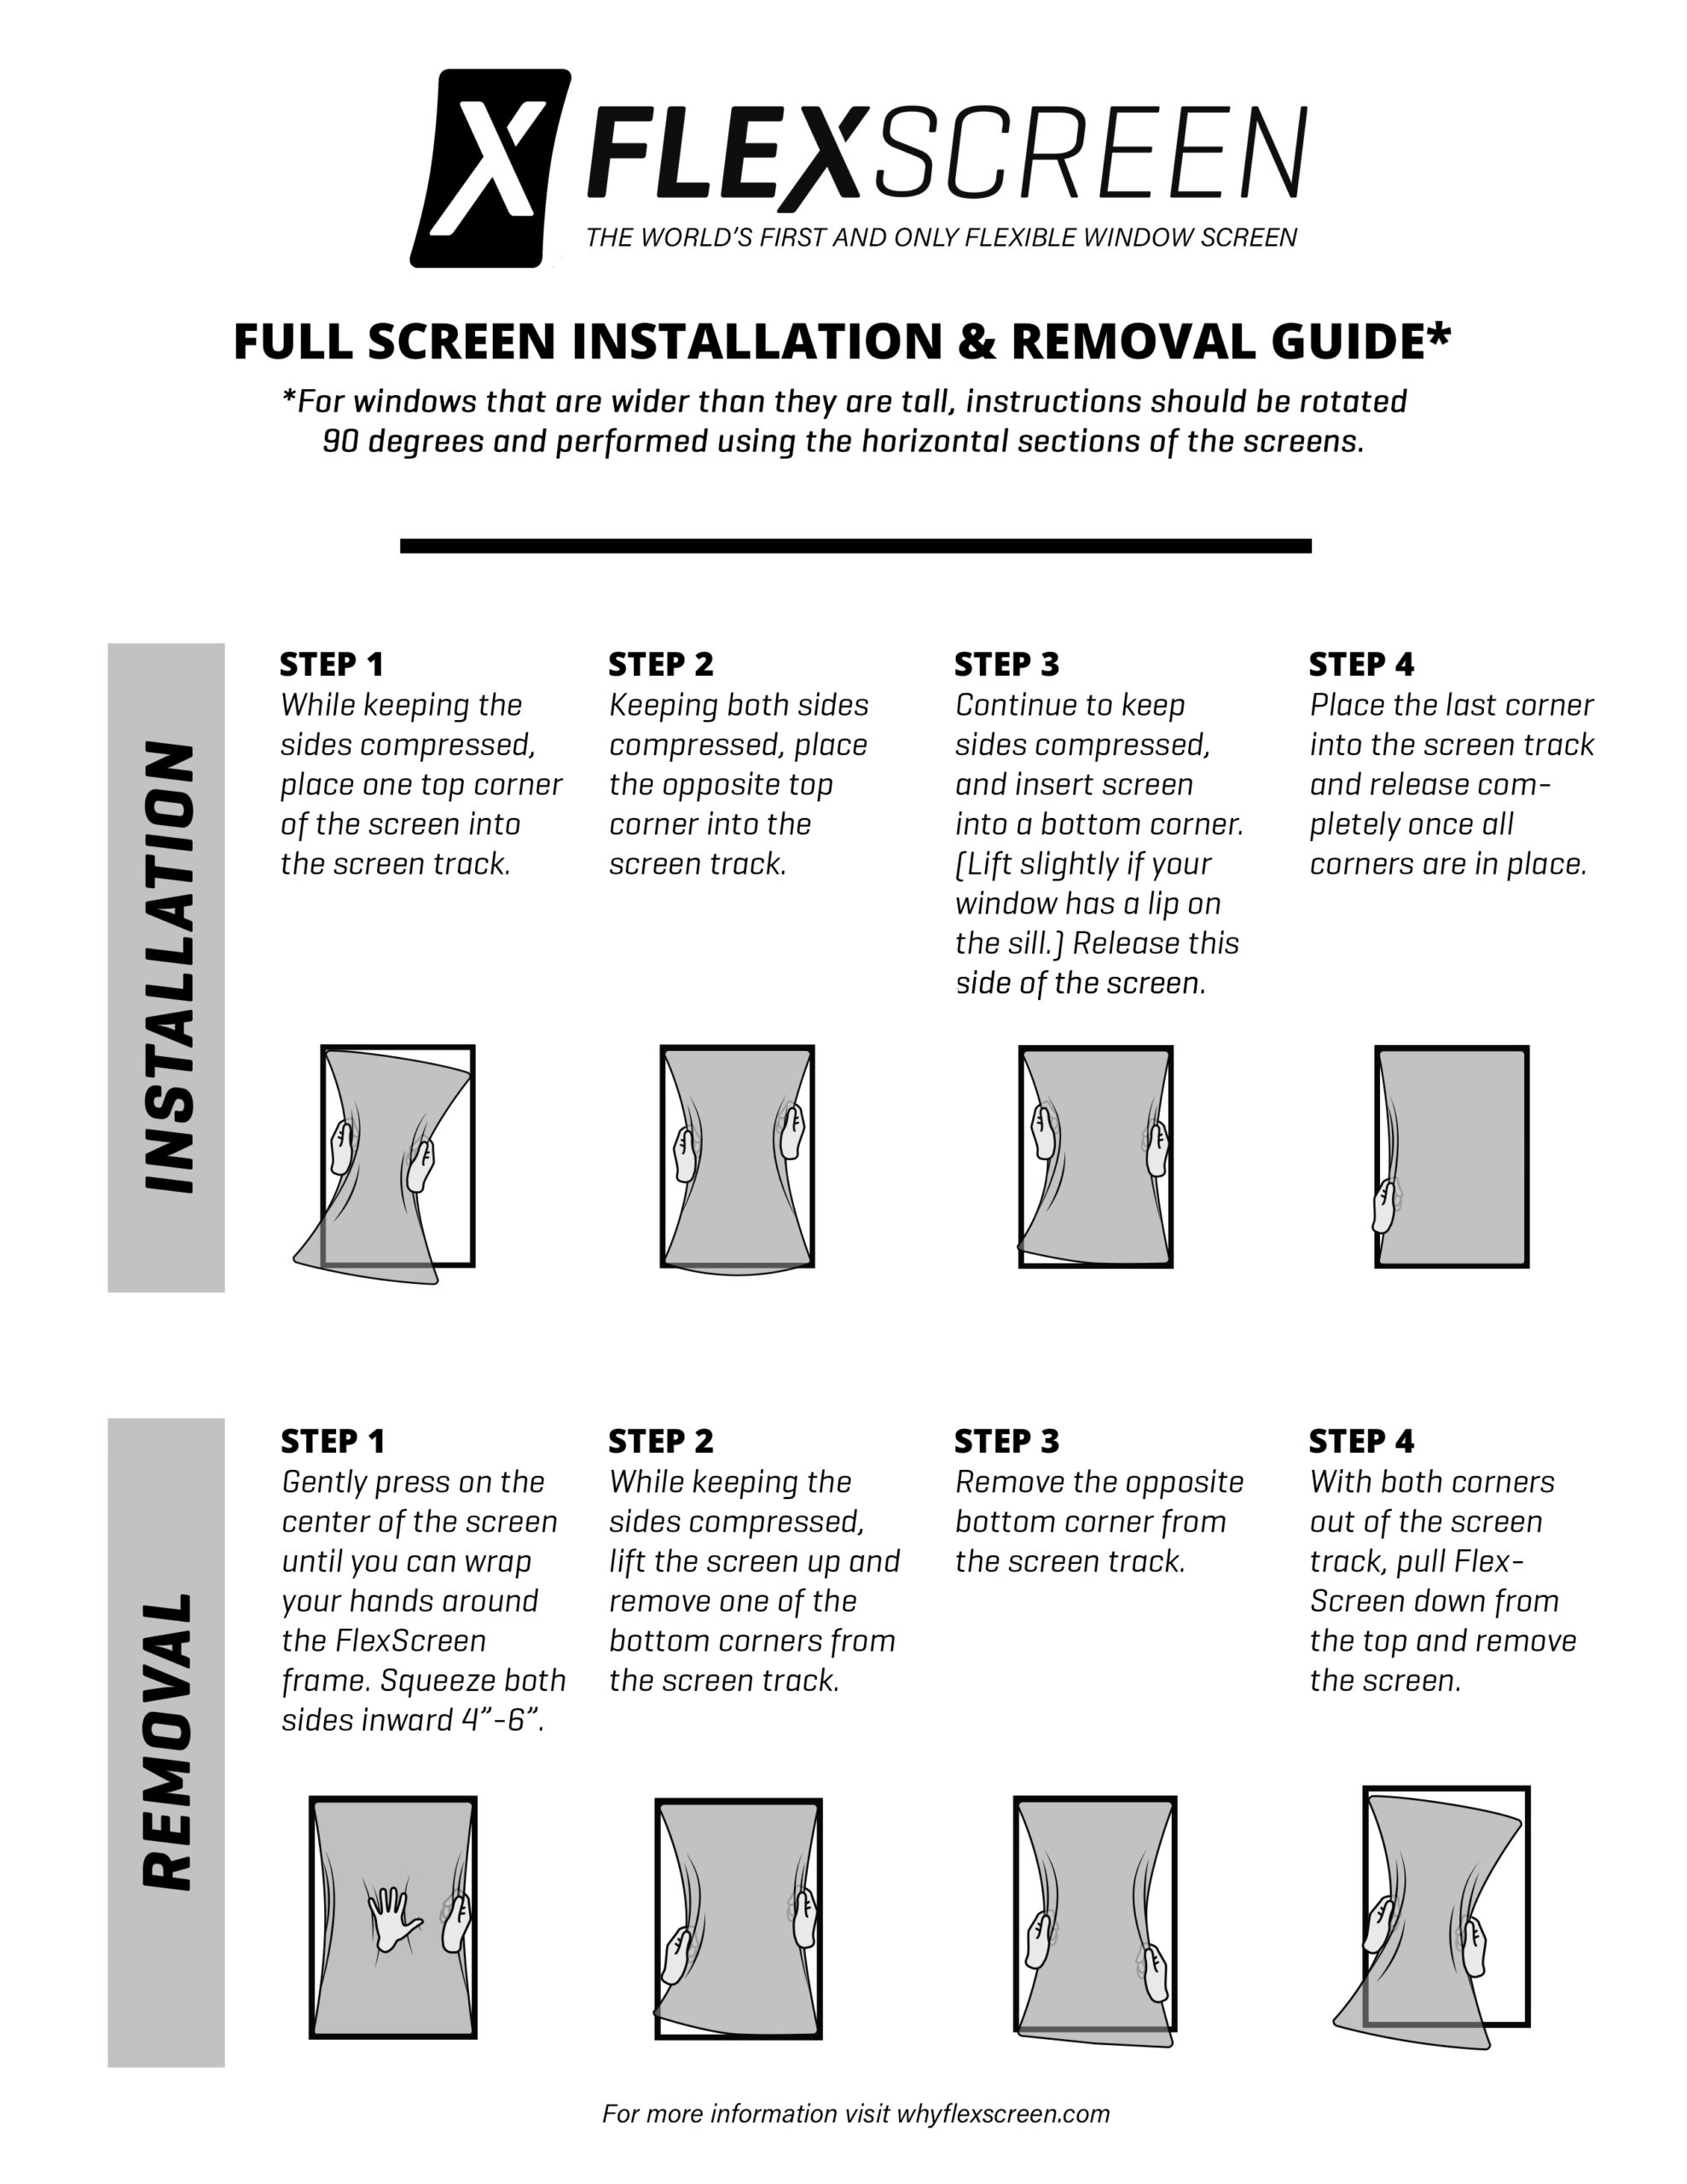 Install and Remove Guide - update sept. 2020